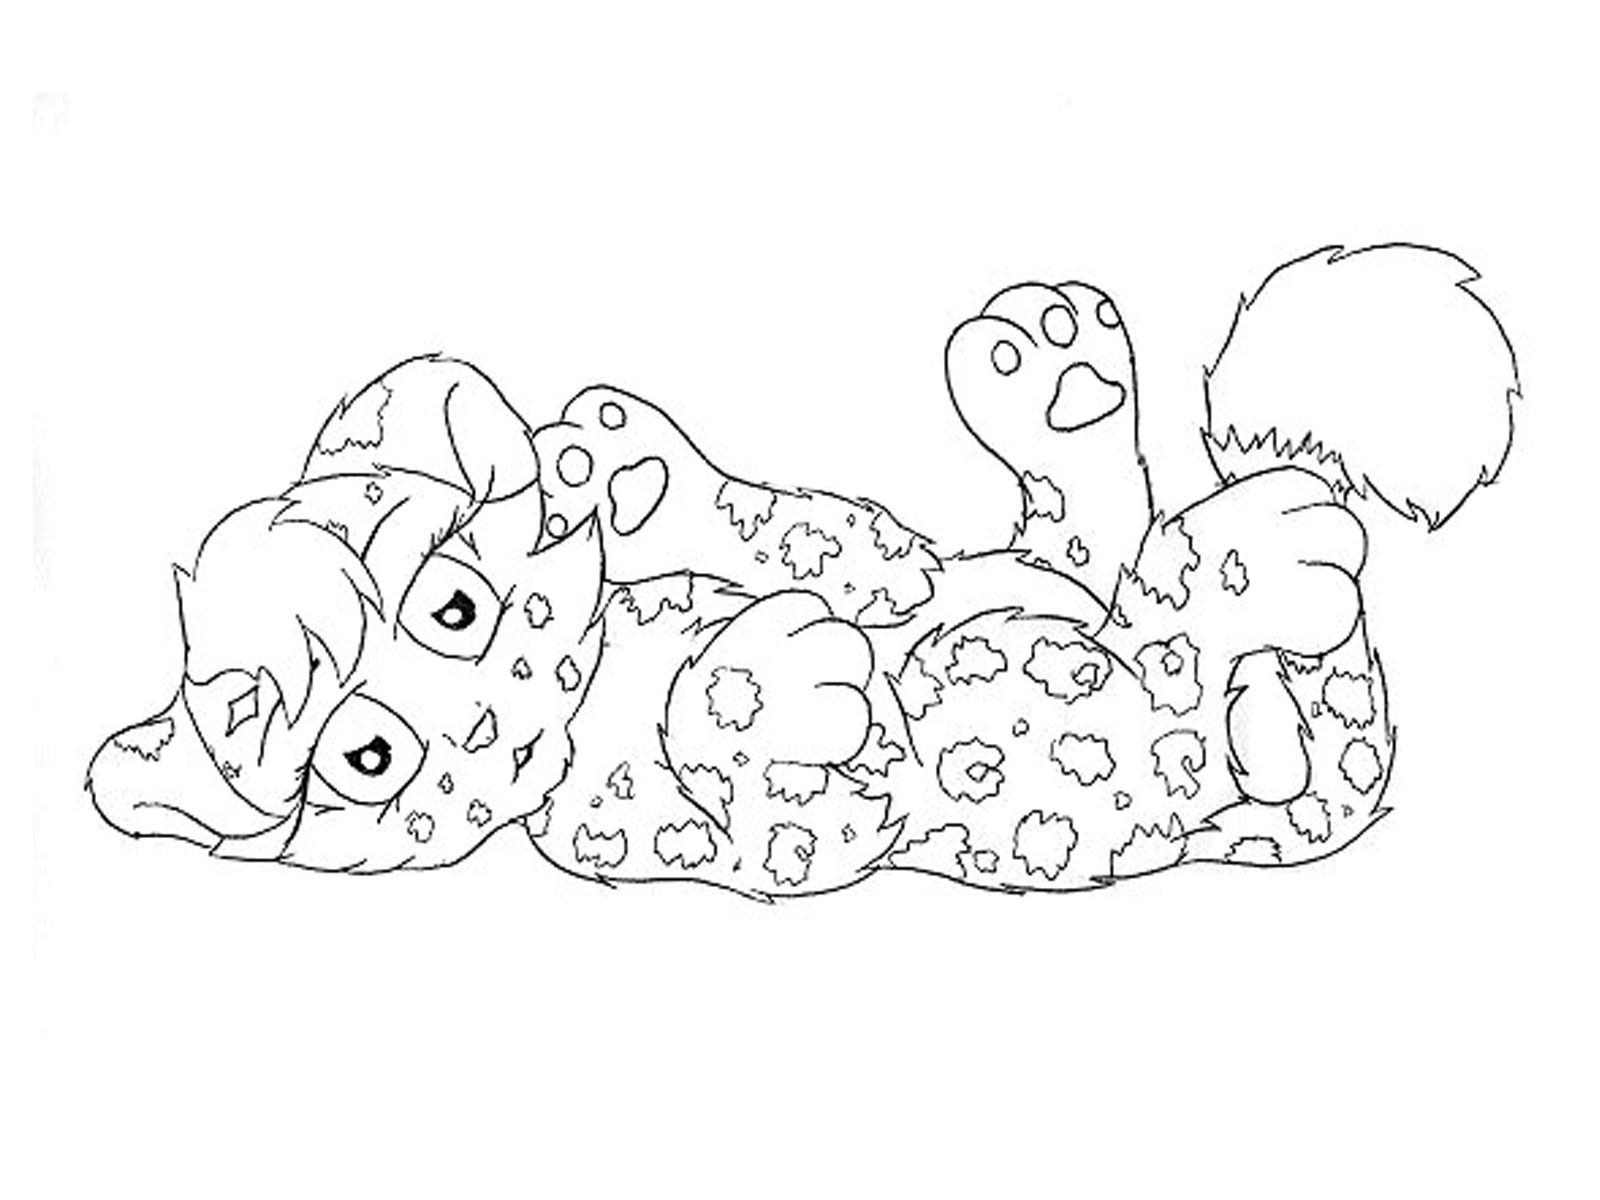 baby jaguar coloring pages | Baby milestones | Pinterest